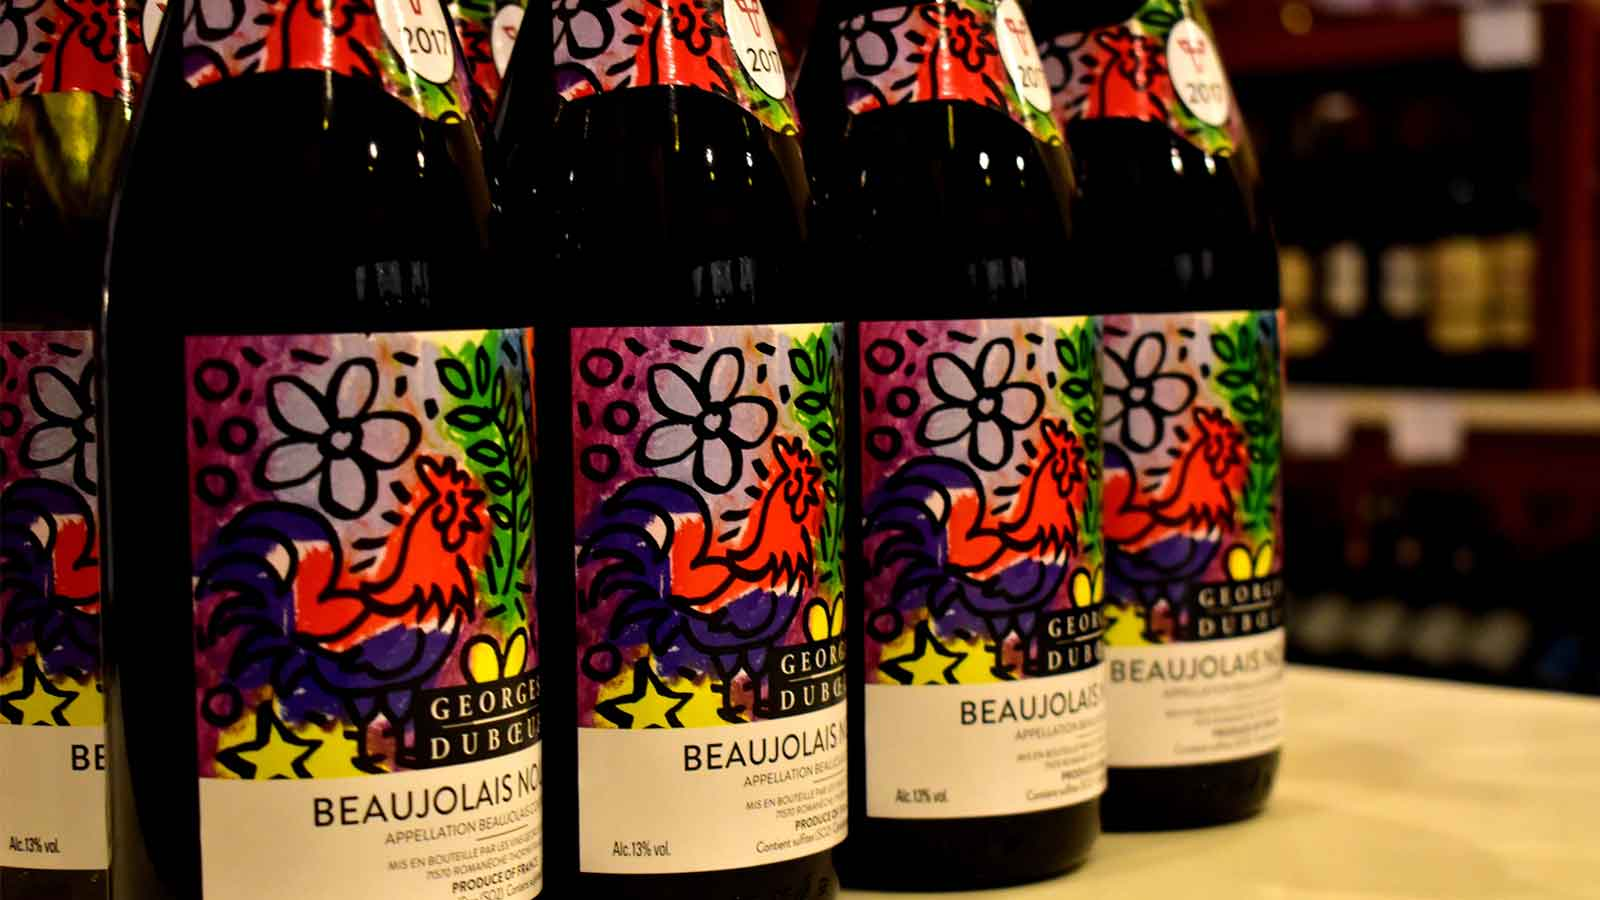 It's Beaujolais Nouveau time